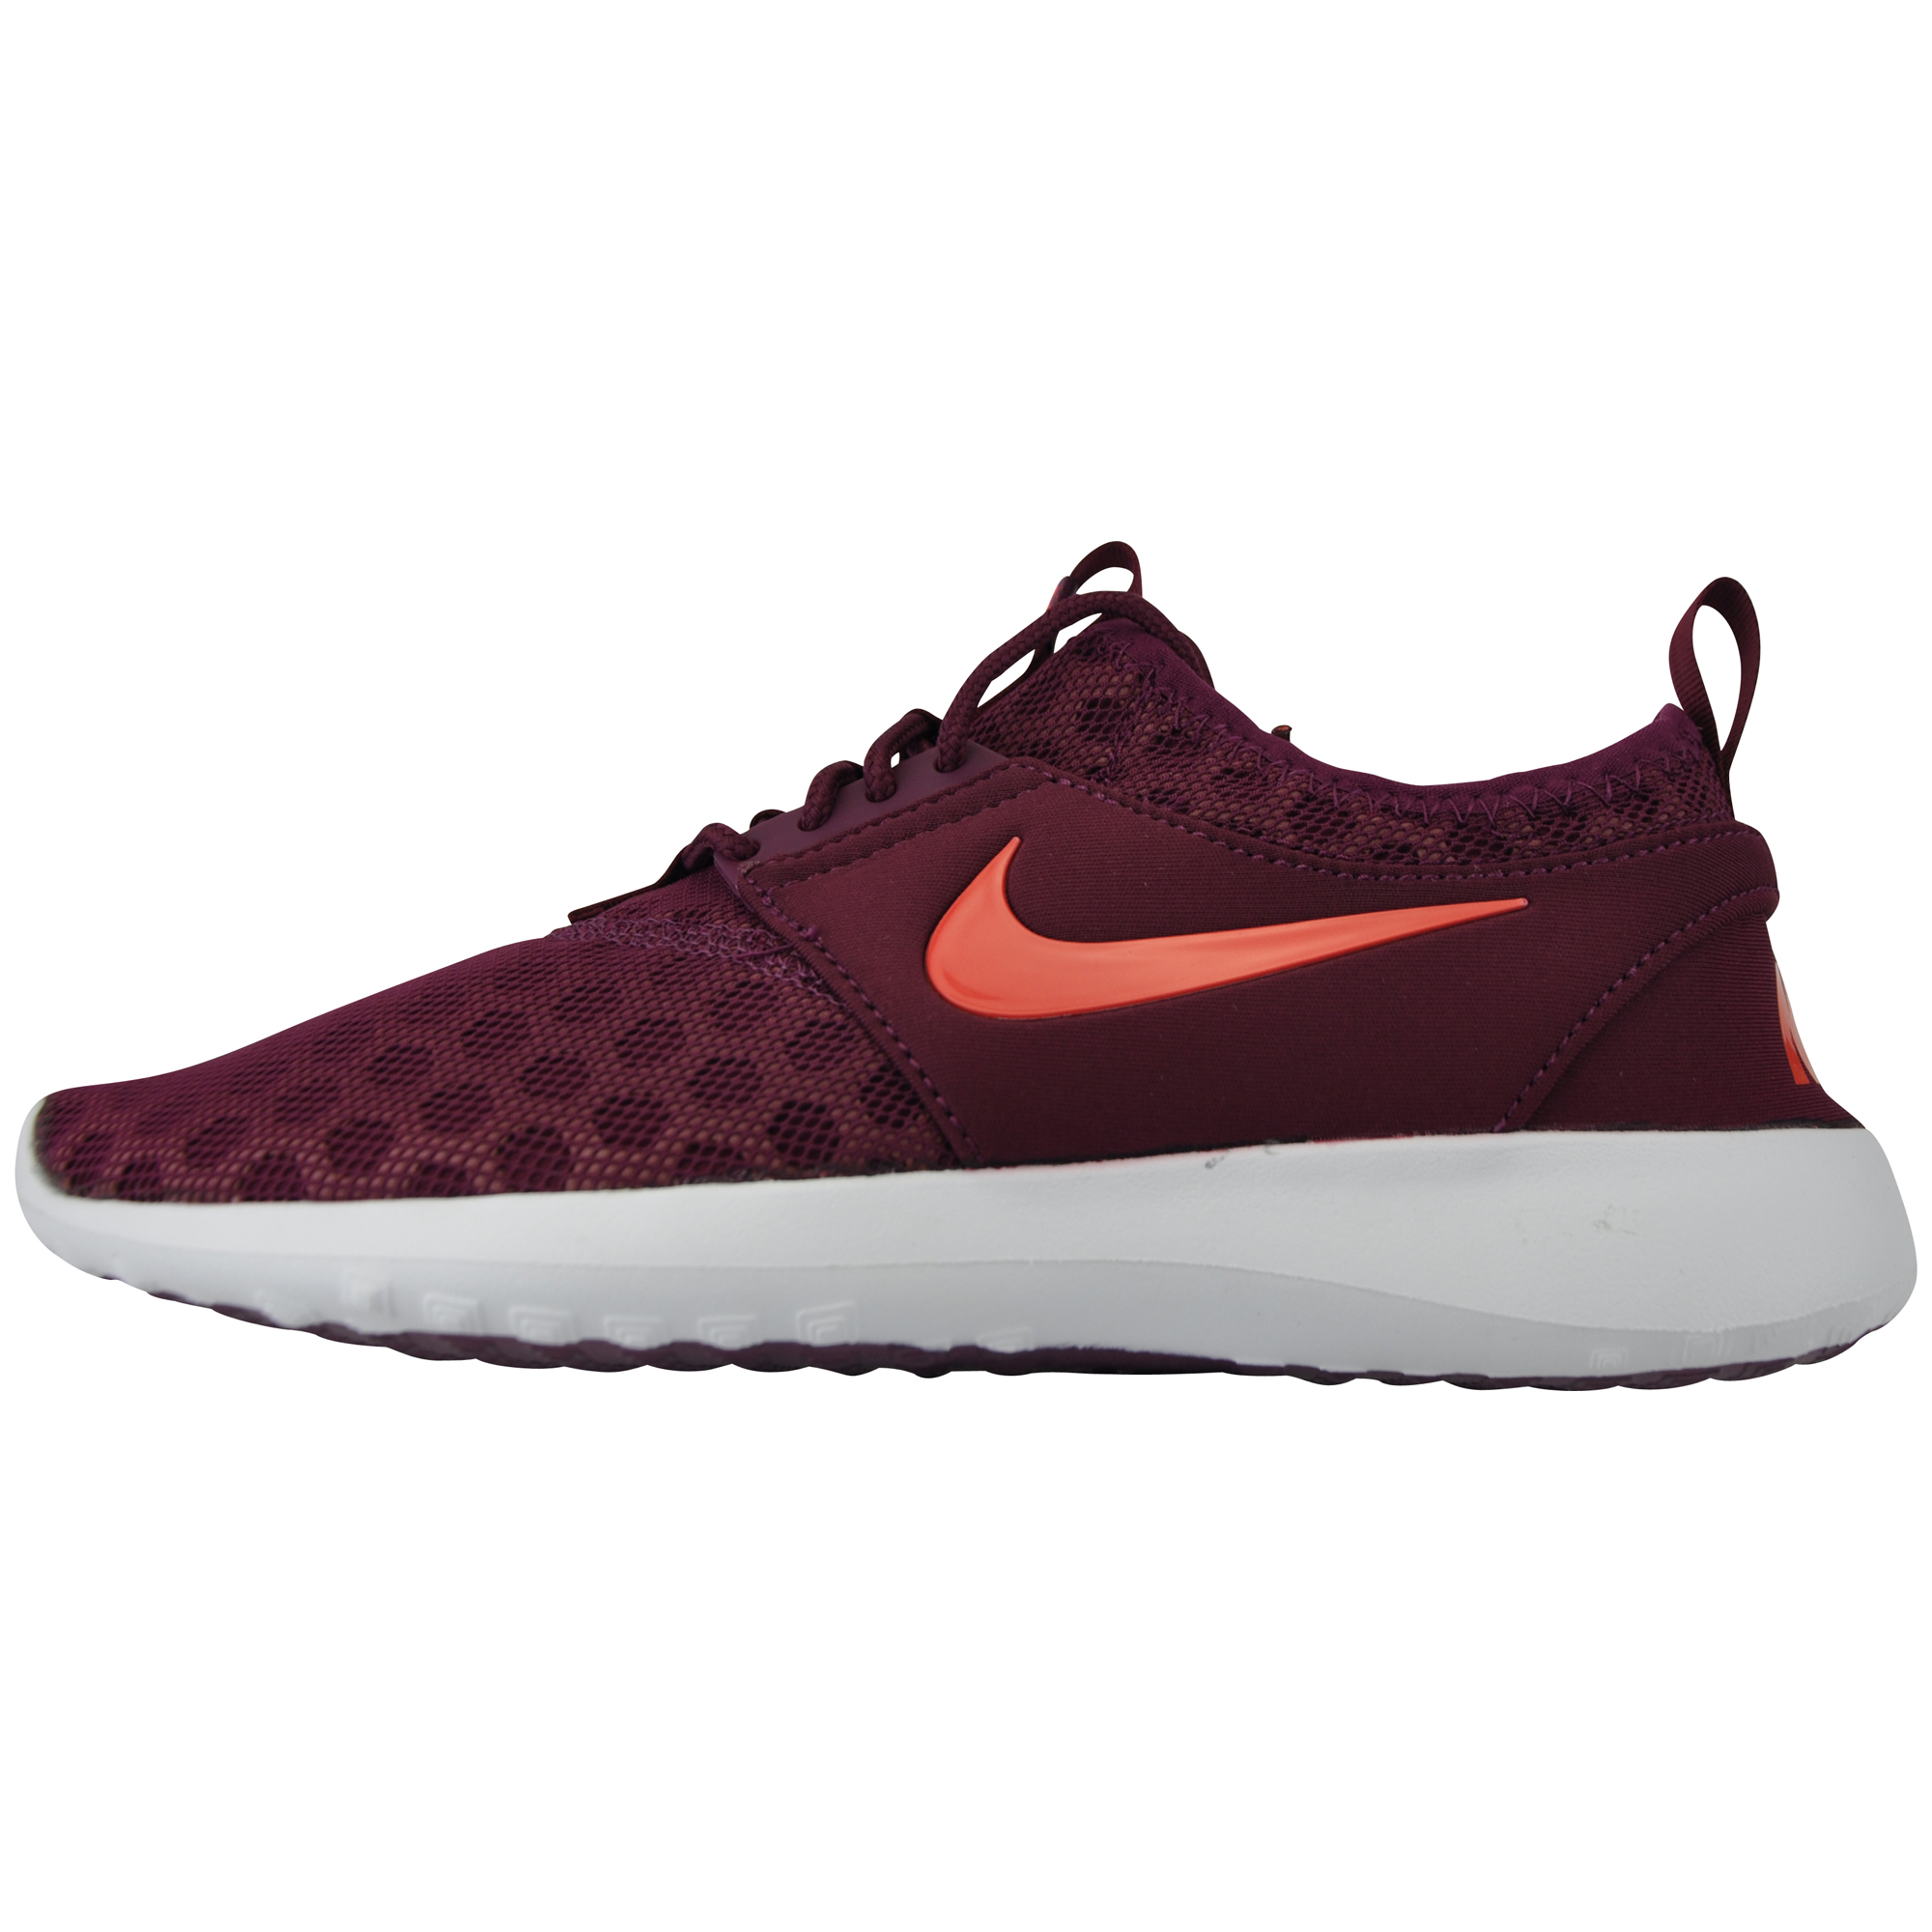 nike free roshe one run juvenate juvente air huarache. Black Bedroom Furniture Sets. Home Design Ideas